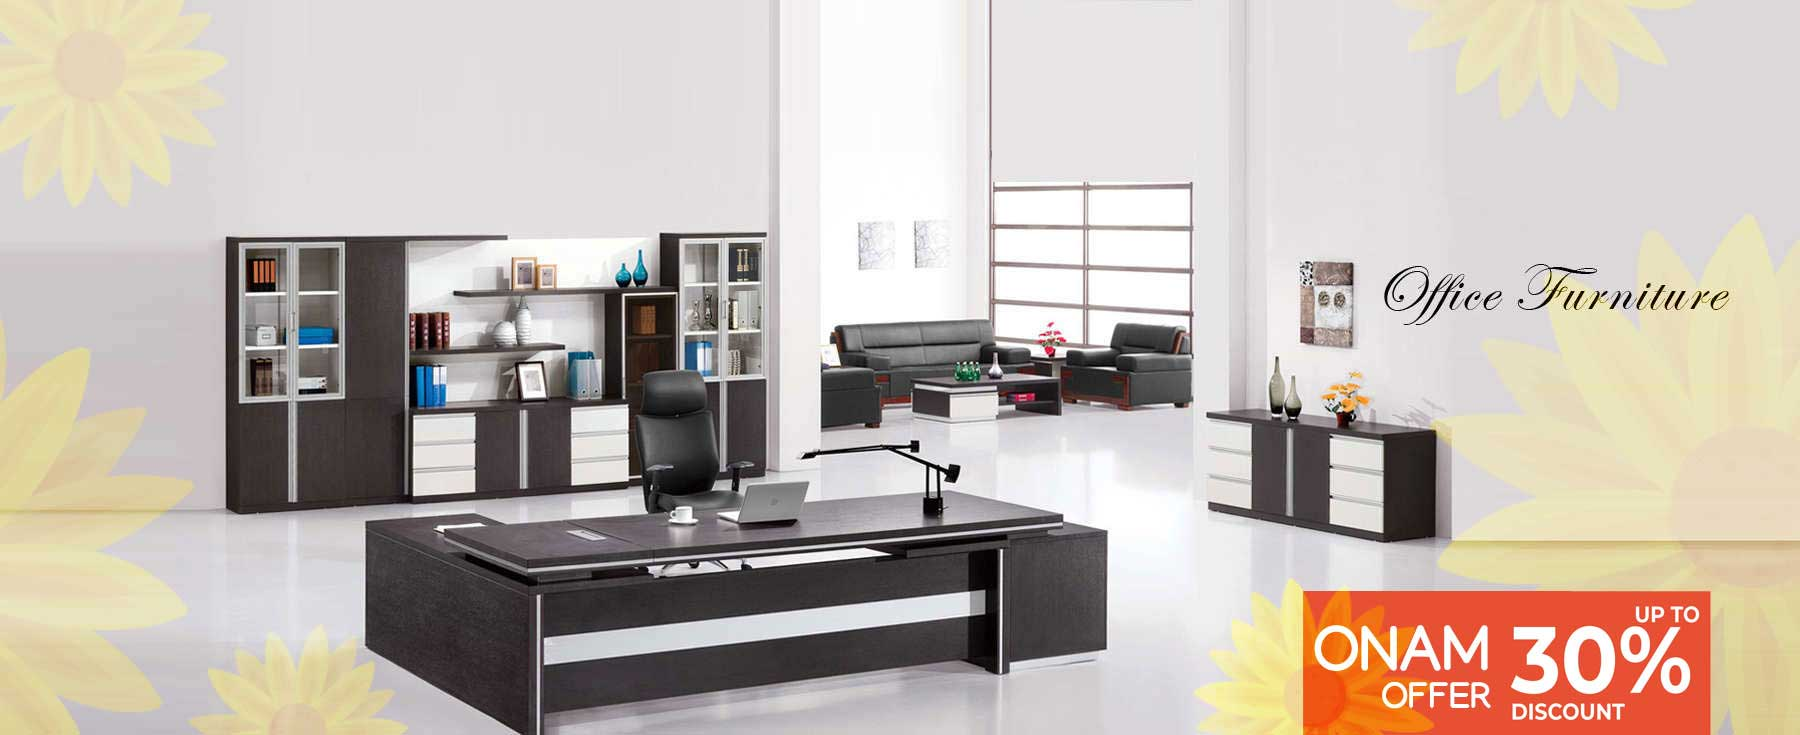 Greshil Interiors Living Room Furniture Diningroom